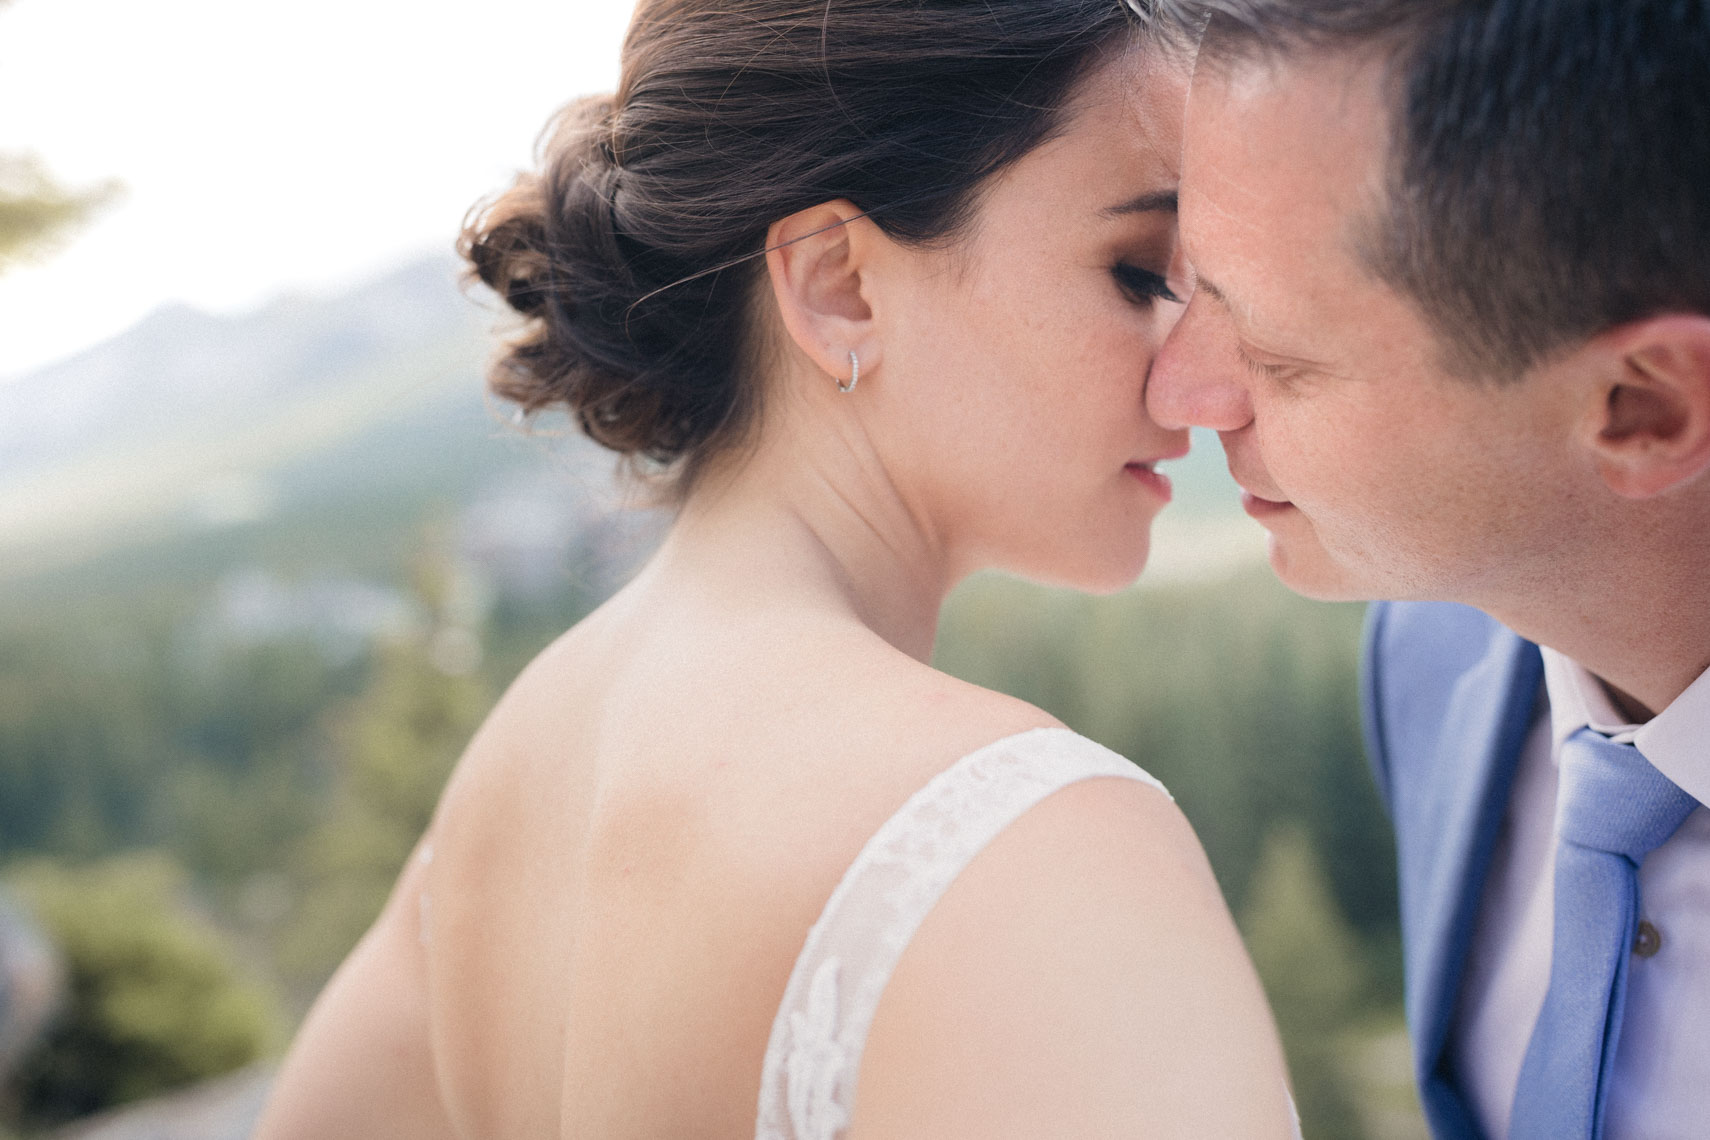 Bride and groom kiss after ceremony at Banff Springs Hotel venue in Alberta